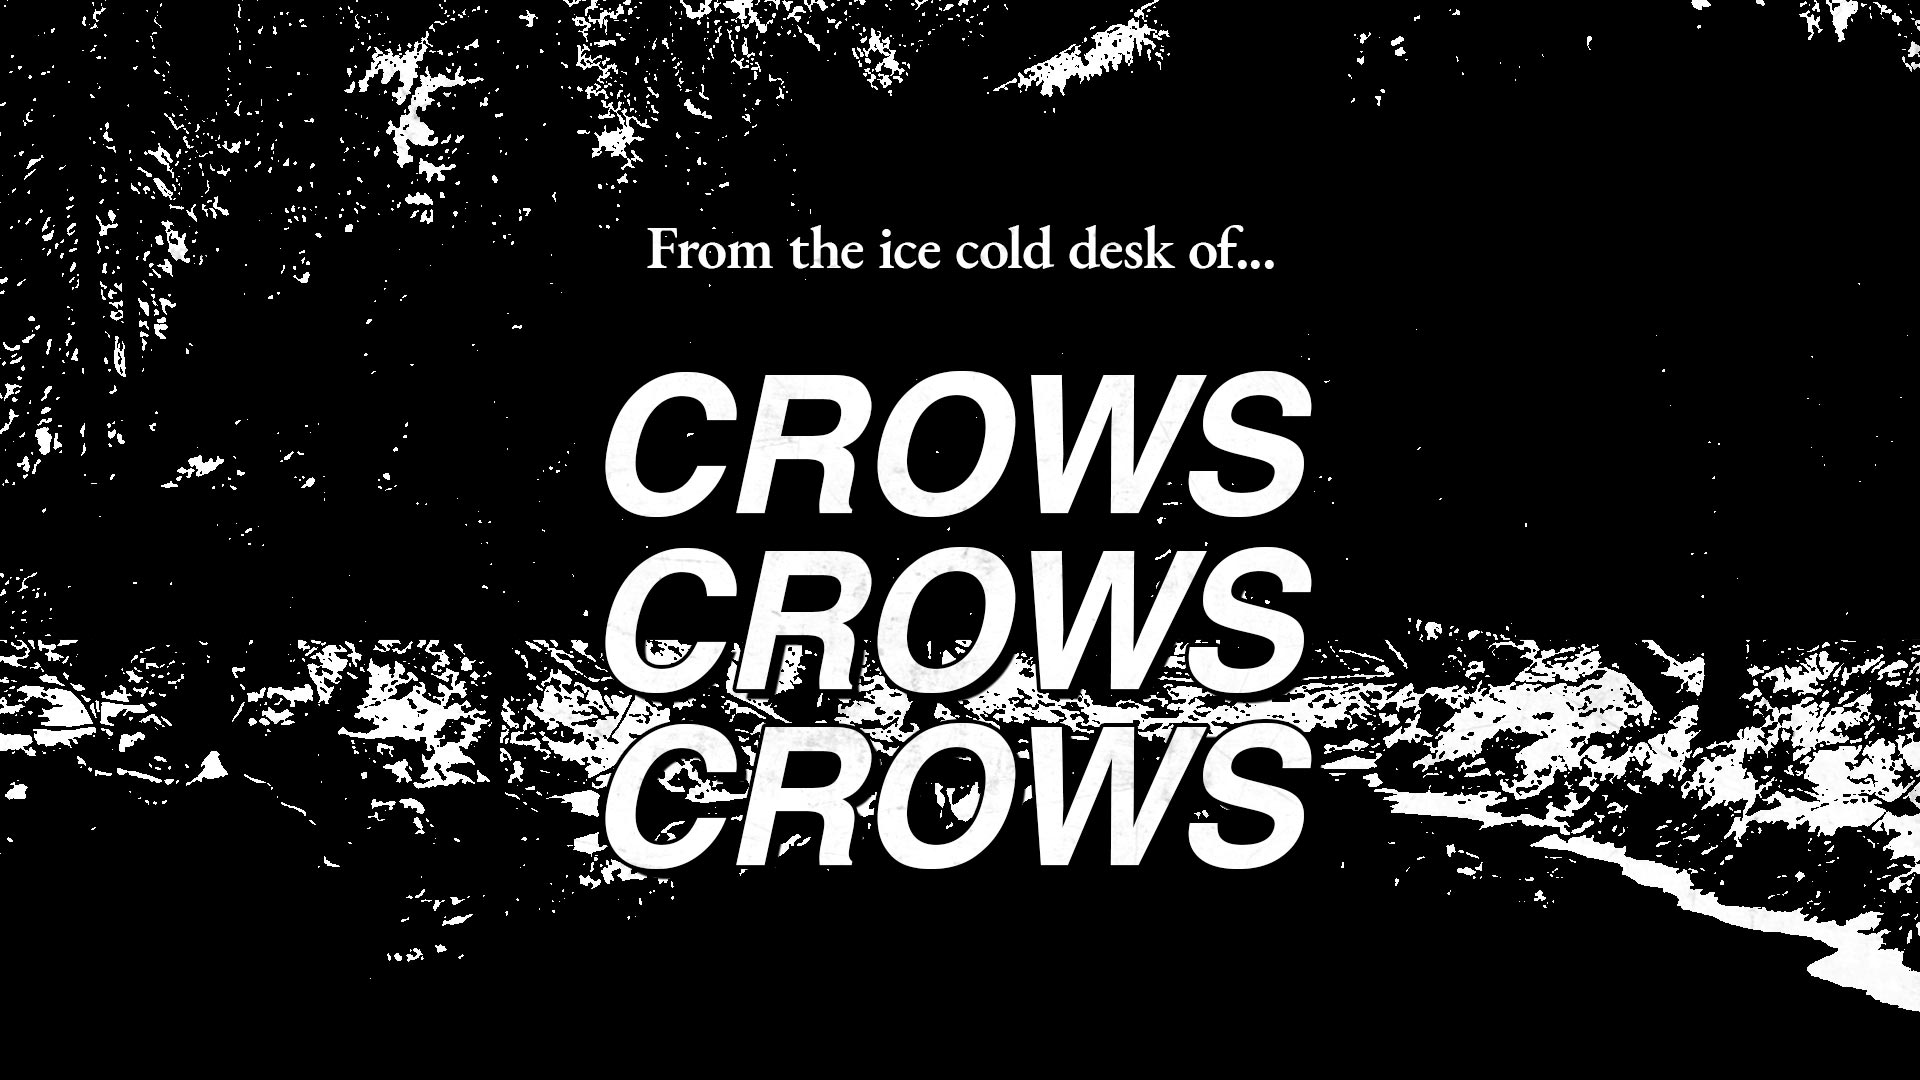 From the ice cold desk of Crows Crows Crows